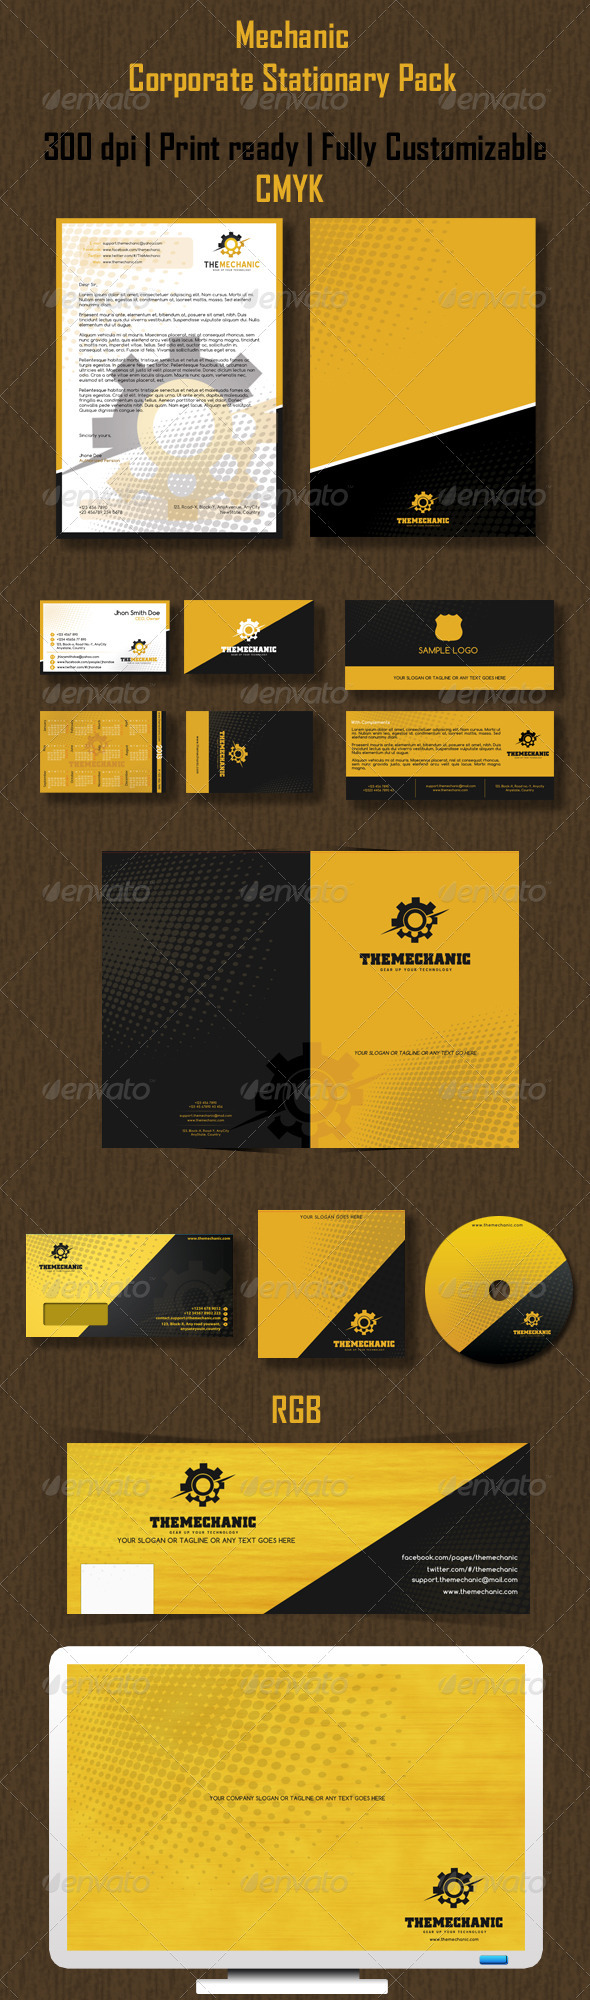 Mechanic Corporate Stationary Pack - Stationery Print Templates